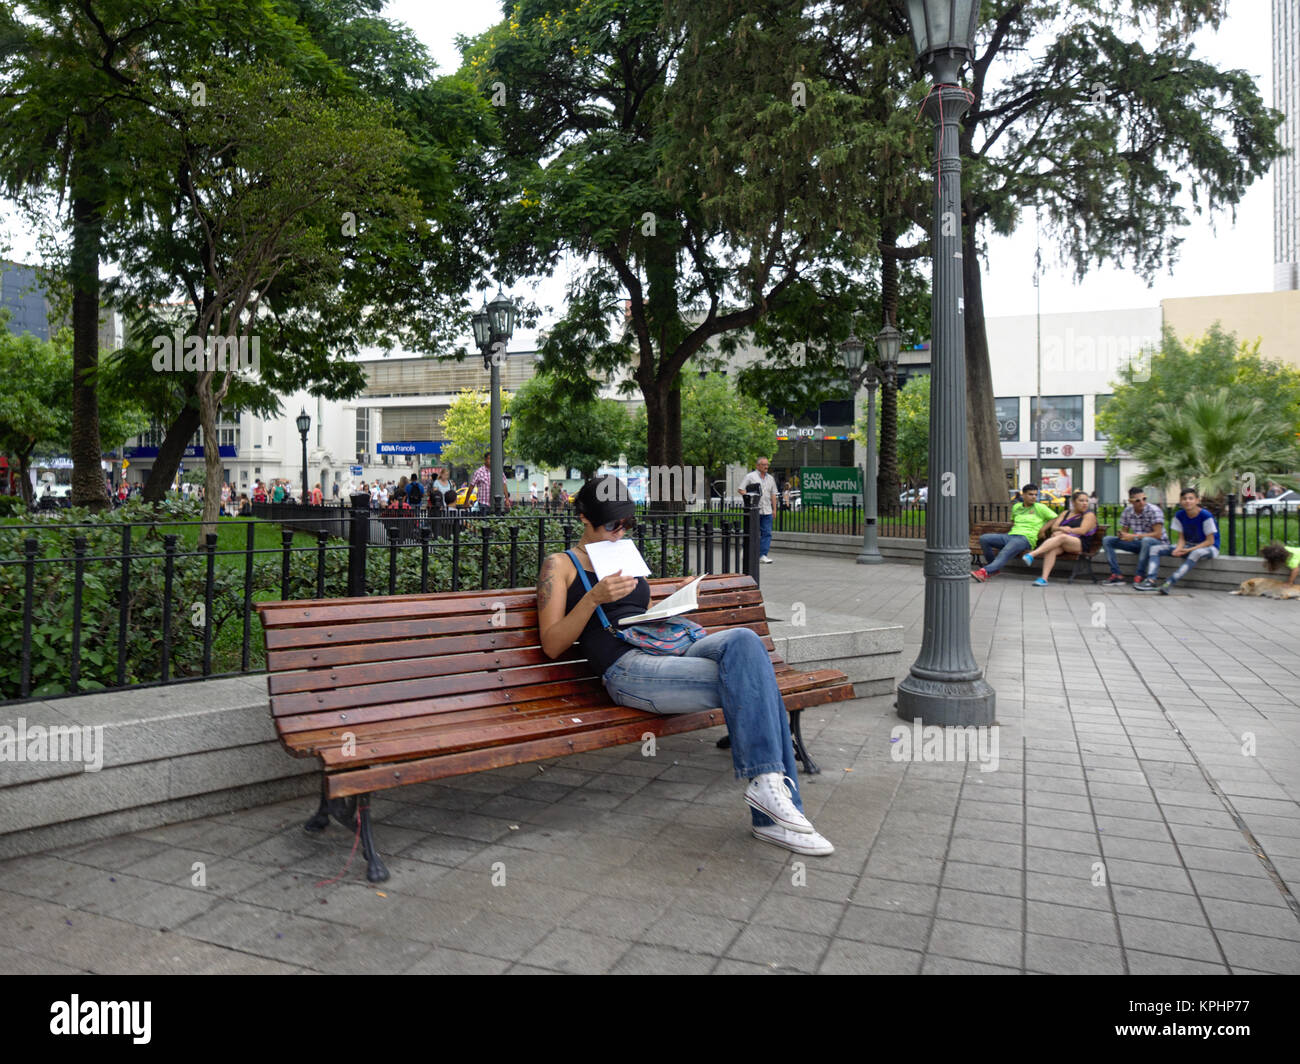 Cordoba, Argentina - 2017: A young woman reads a book on a bench at San Martin square, one of the main city landmarks. Stock Photo